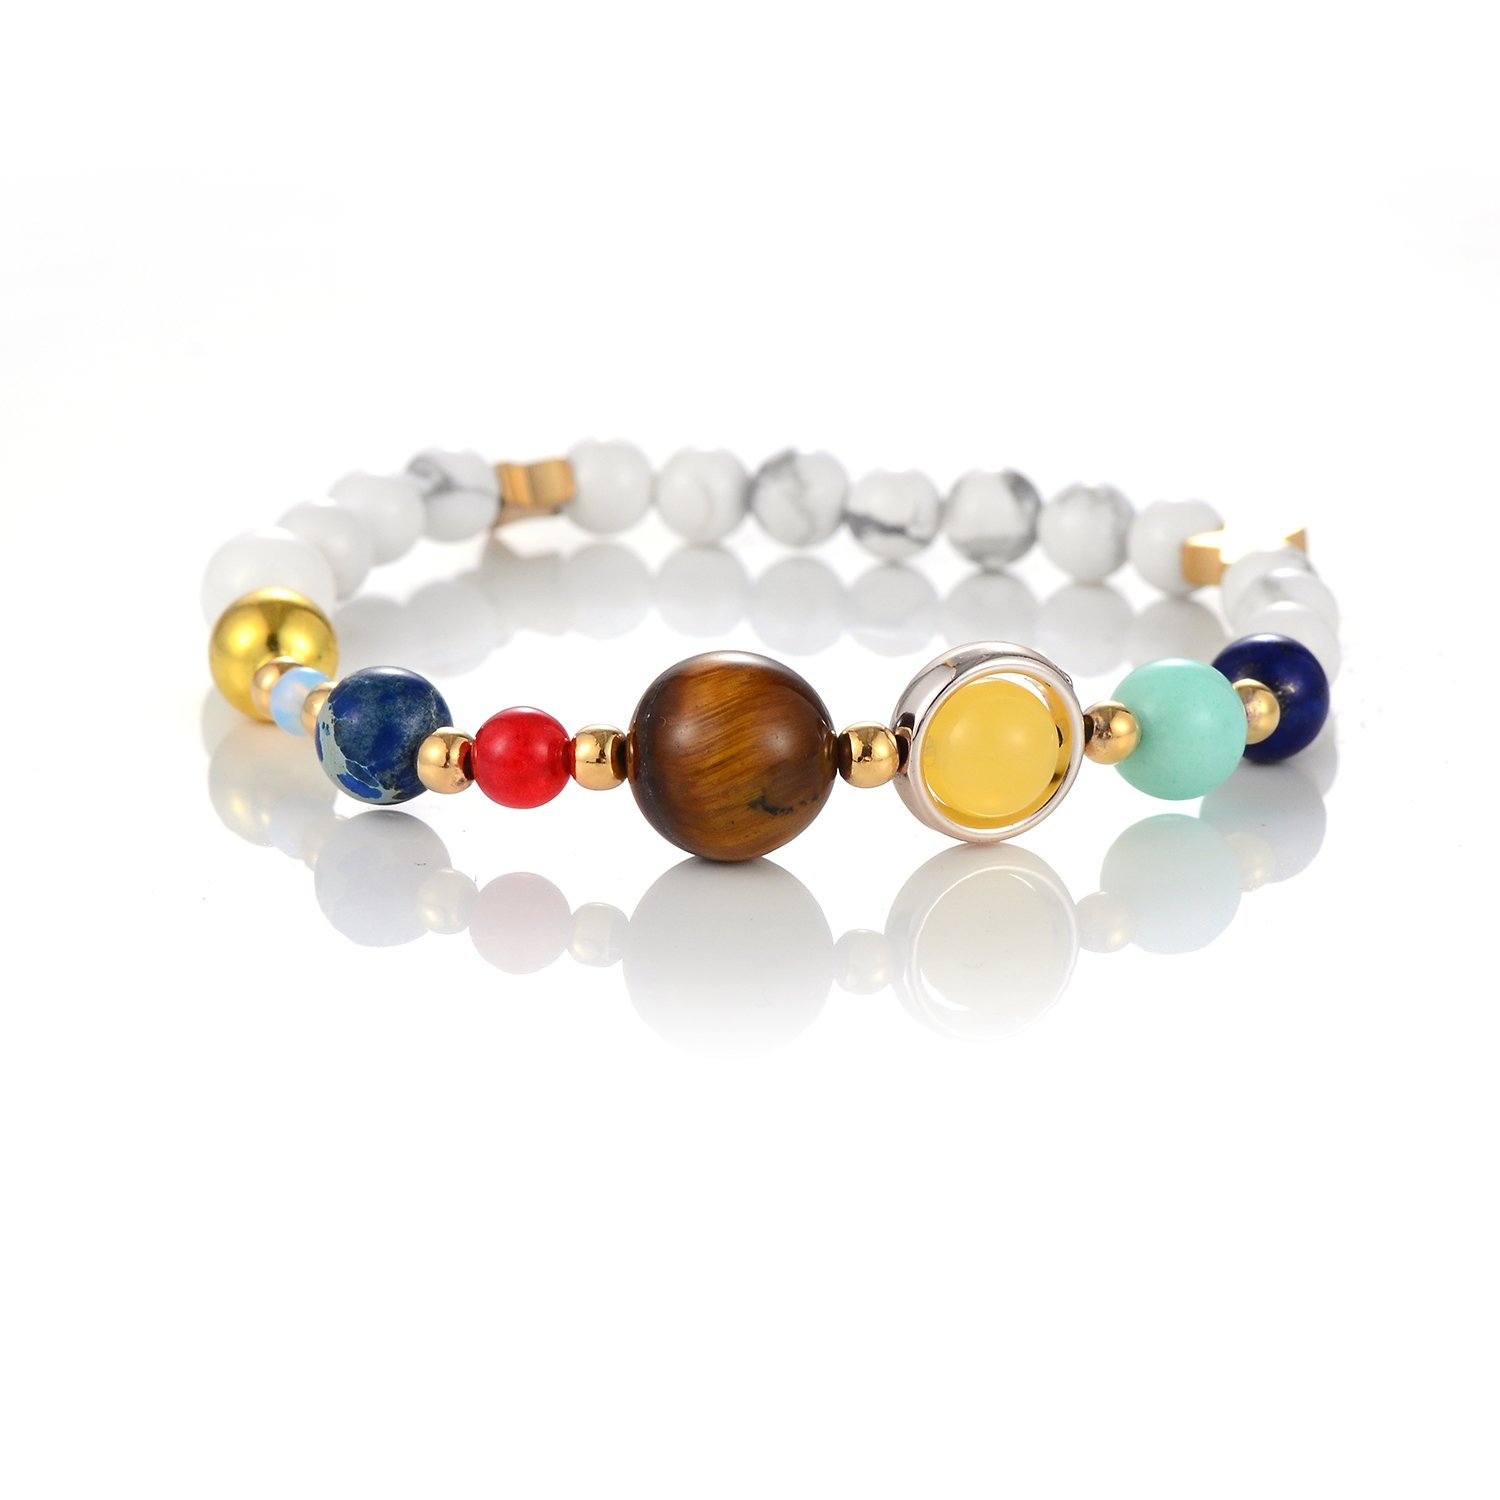 Solar System Bracelet White Turquoise Galaxy The Nine Planets Guardian Star Natural Stone Beads Bracelets